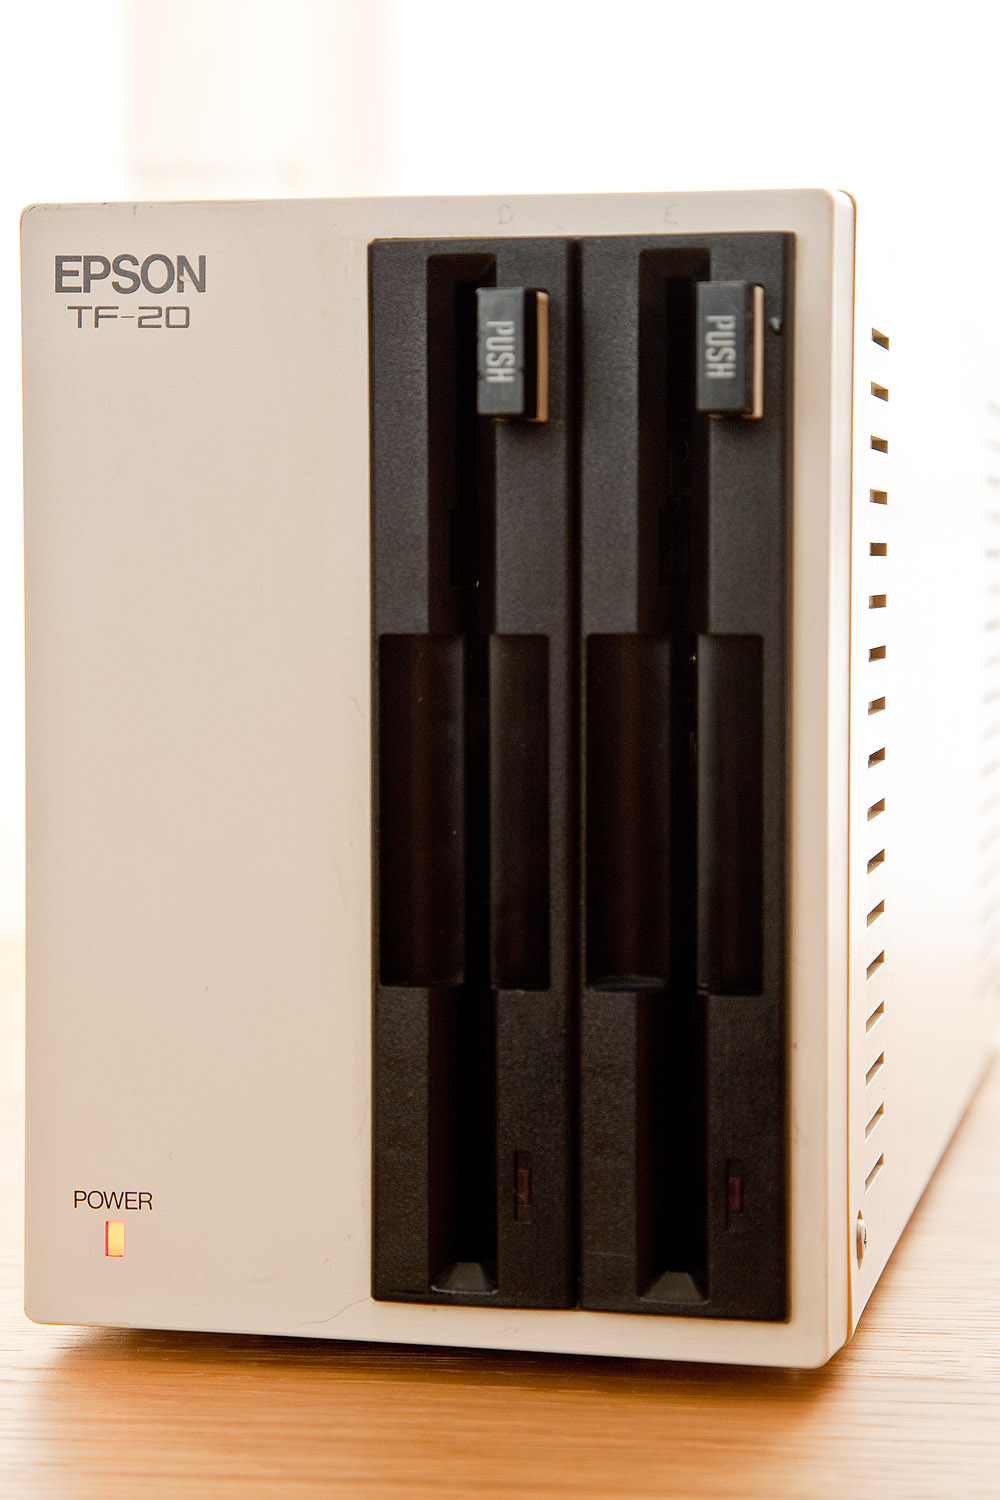 Epson TF-20 5.25 Inch Double